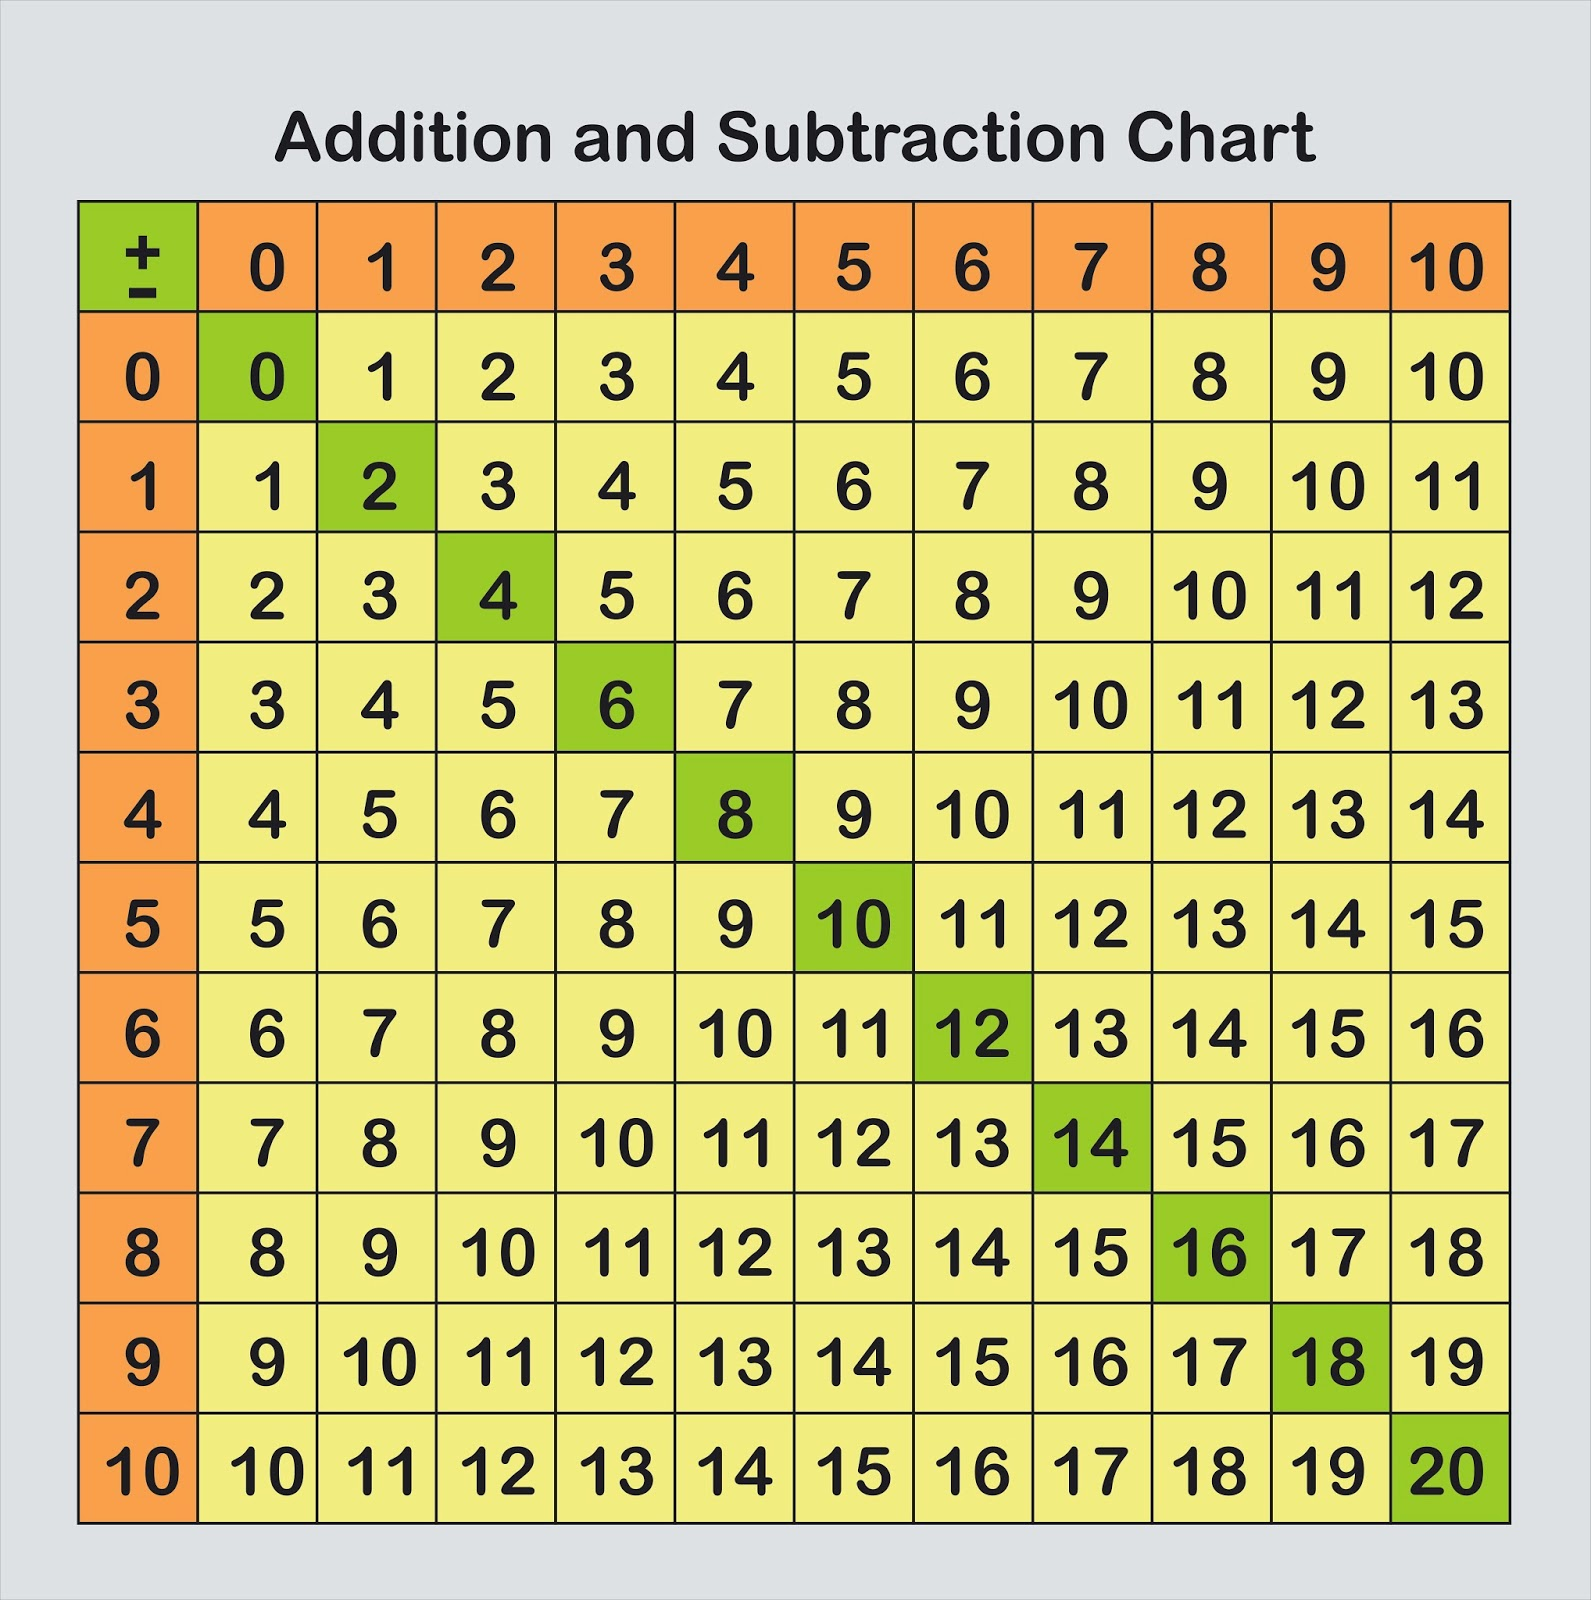 worksheet Subtraction Chart math manipulatives and their needs innovative design educational pattern blocks consists of six different shapes colors yellow hexagons red trapezoids orange squa